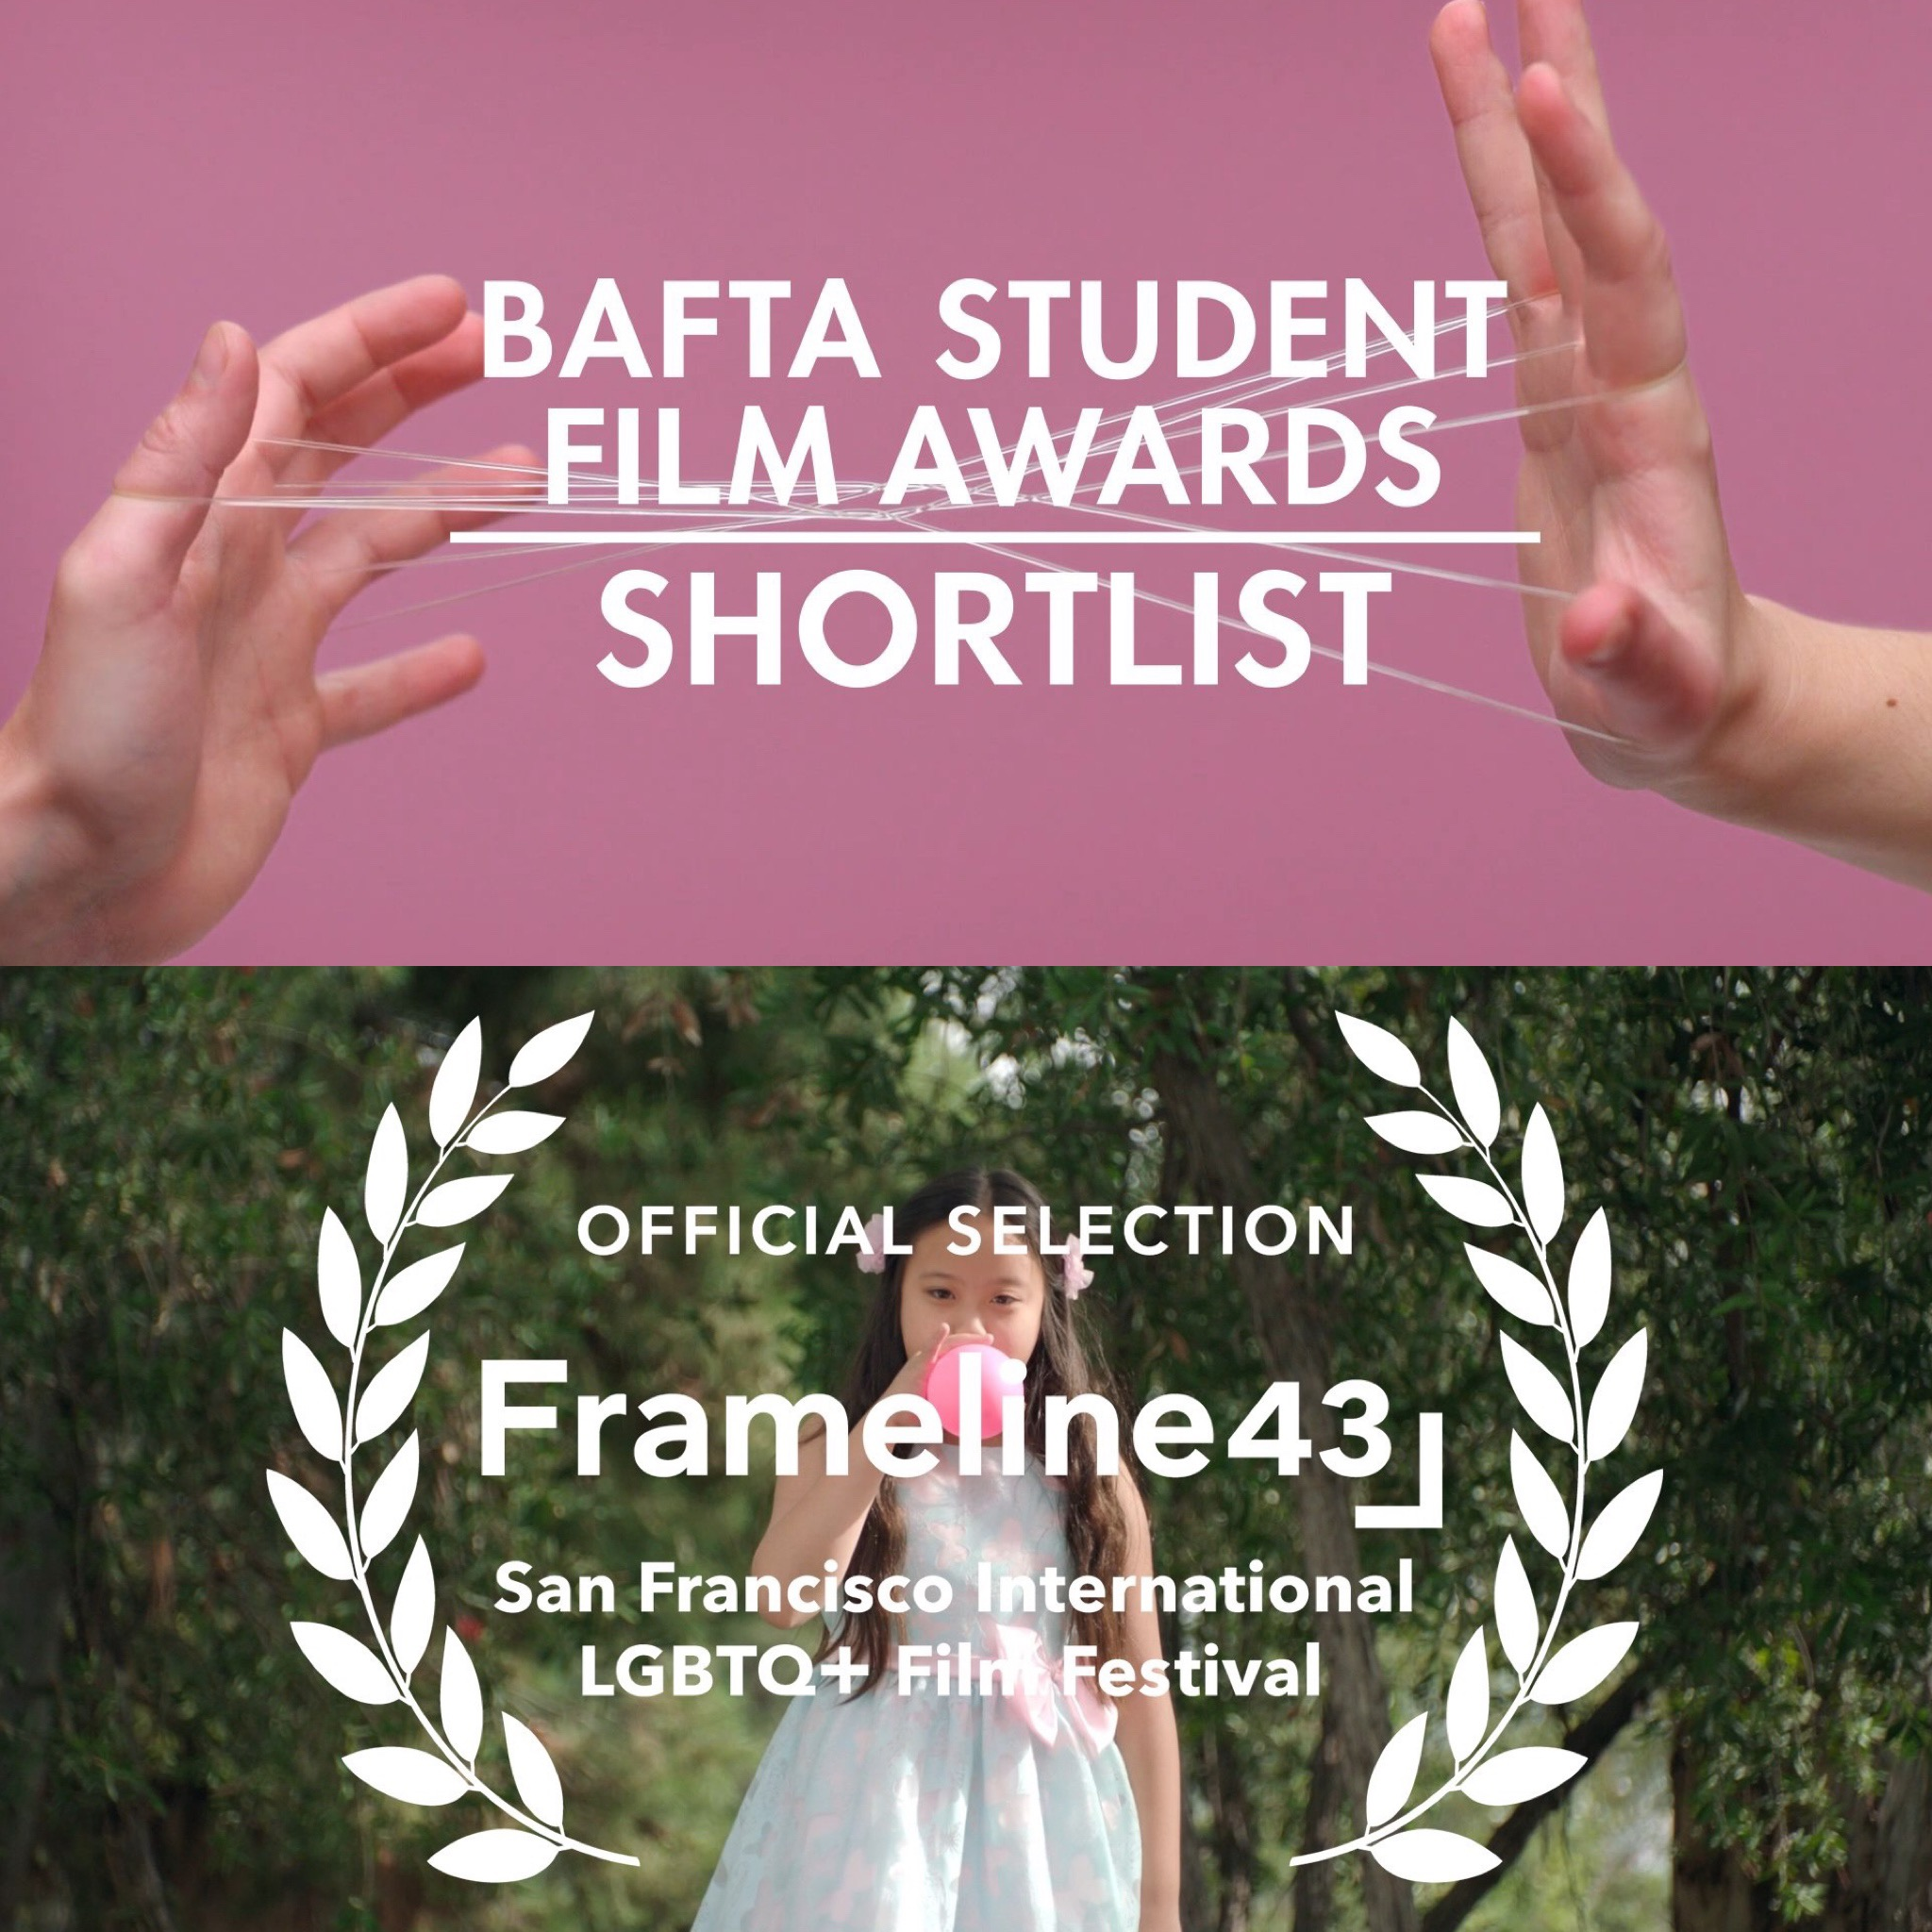 """AFI Thesis Film """"How To Live Your Life Correctly"""" on the BAFTA Student Film Awards Shortlist and will screen at SFILGBTQ Film Festival"""